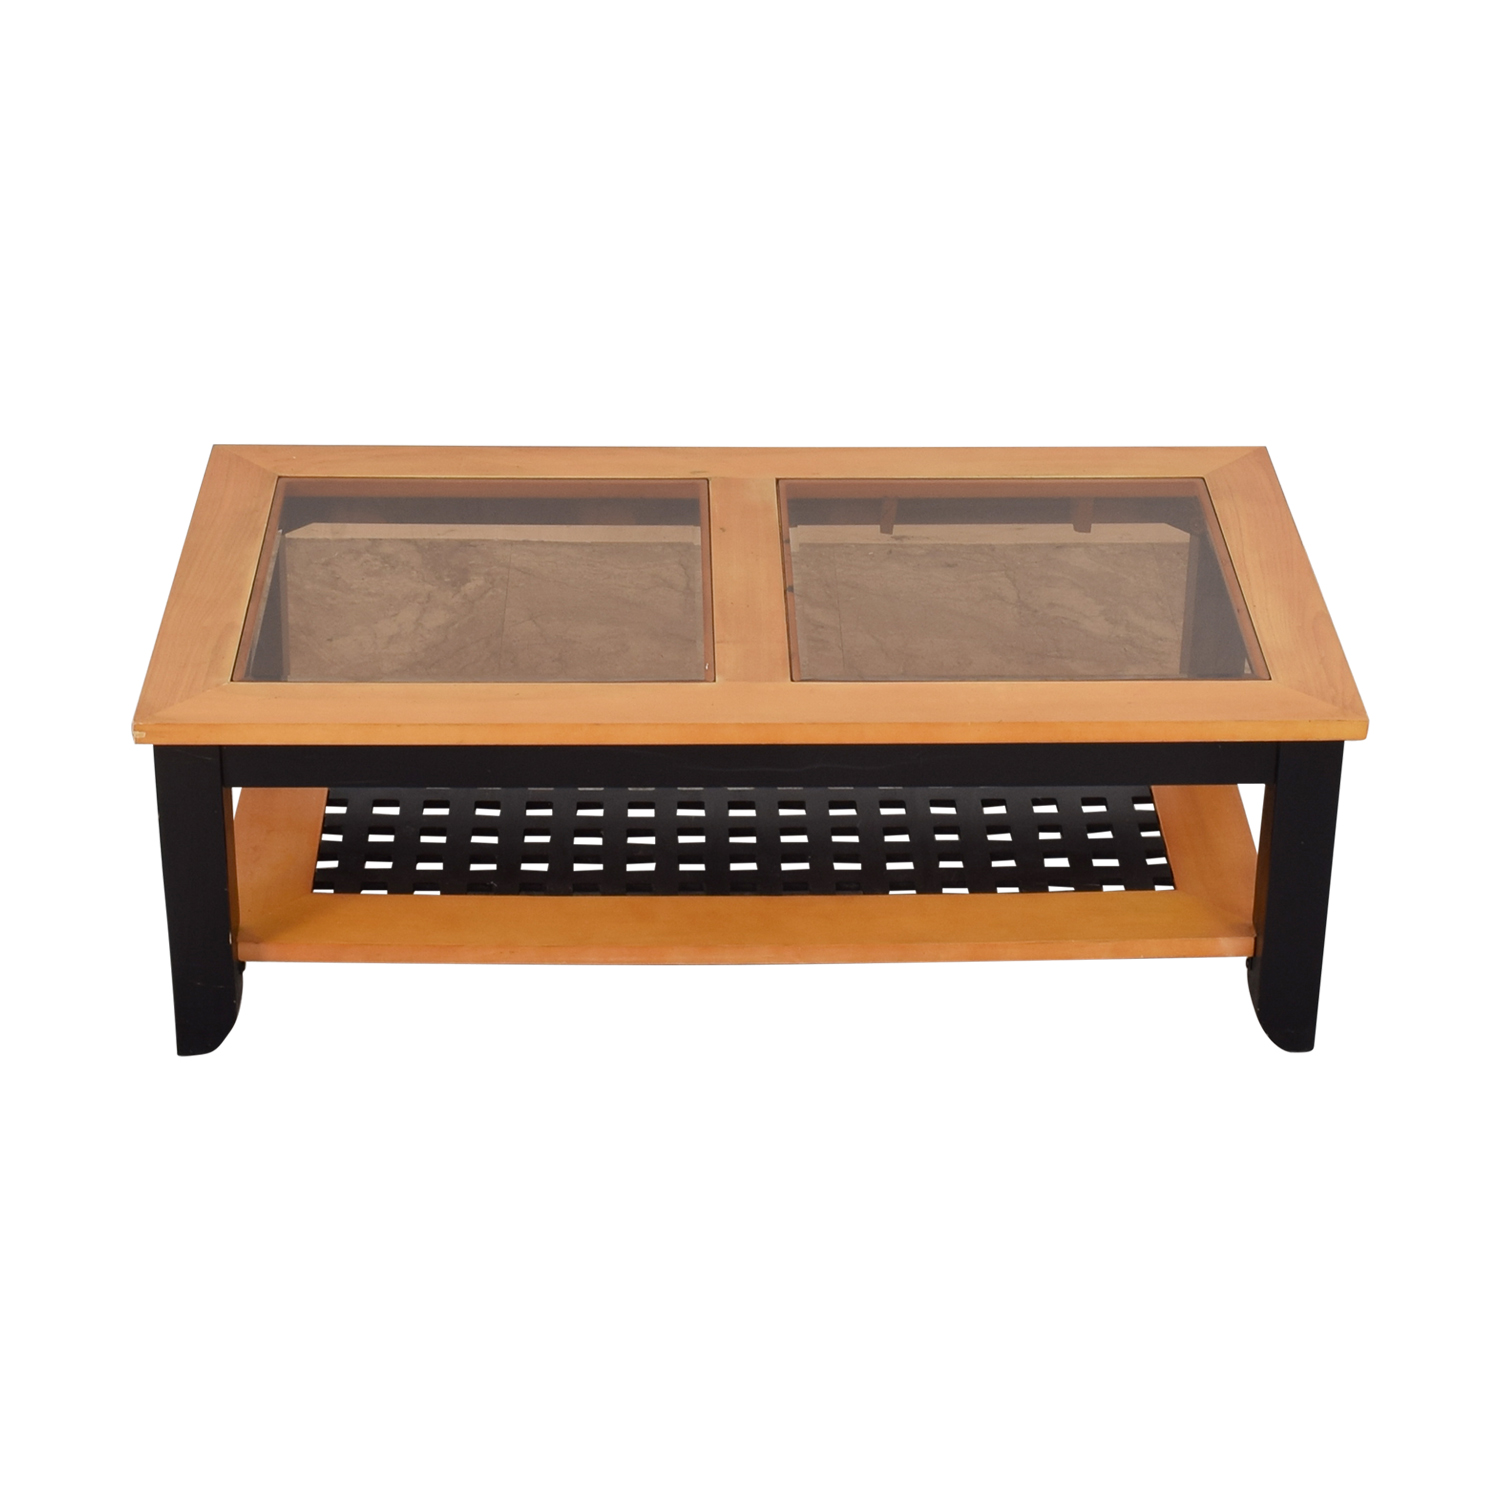 Smoke Glass Top Coffee Table price